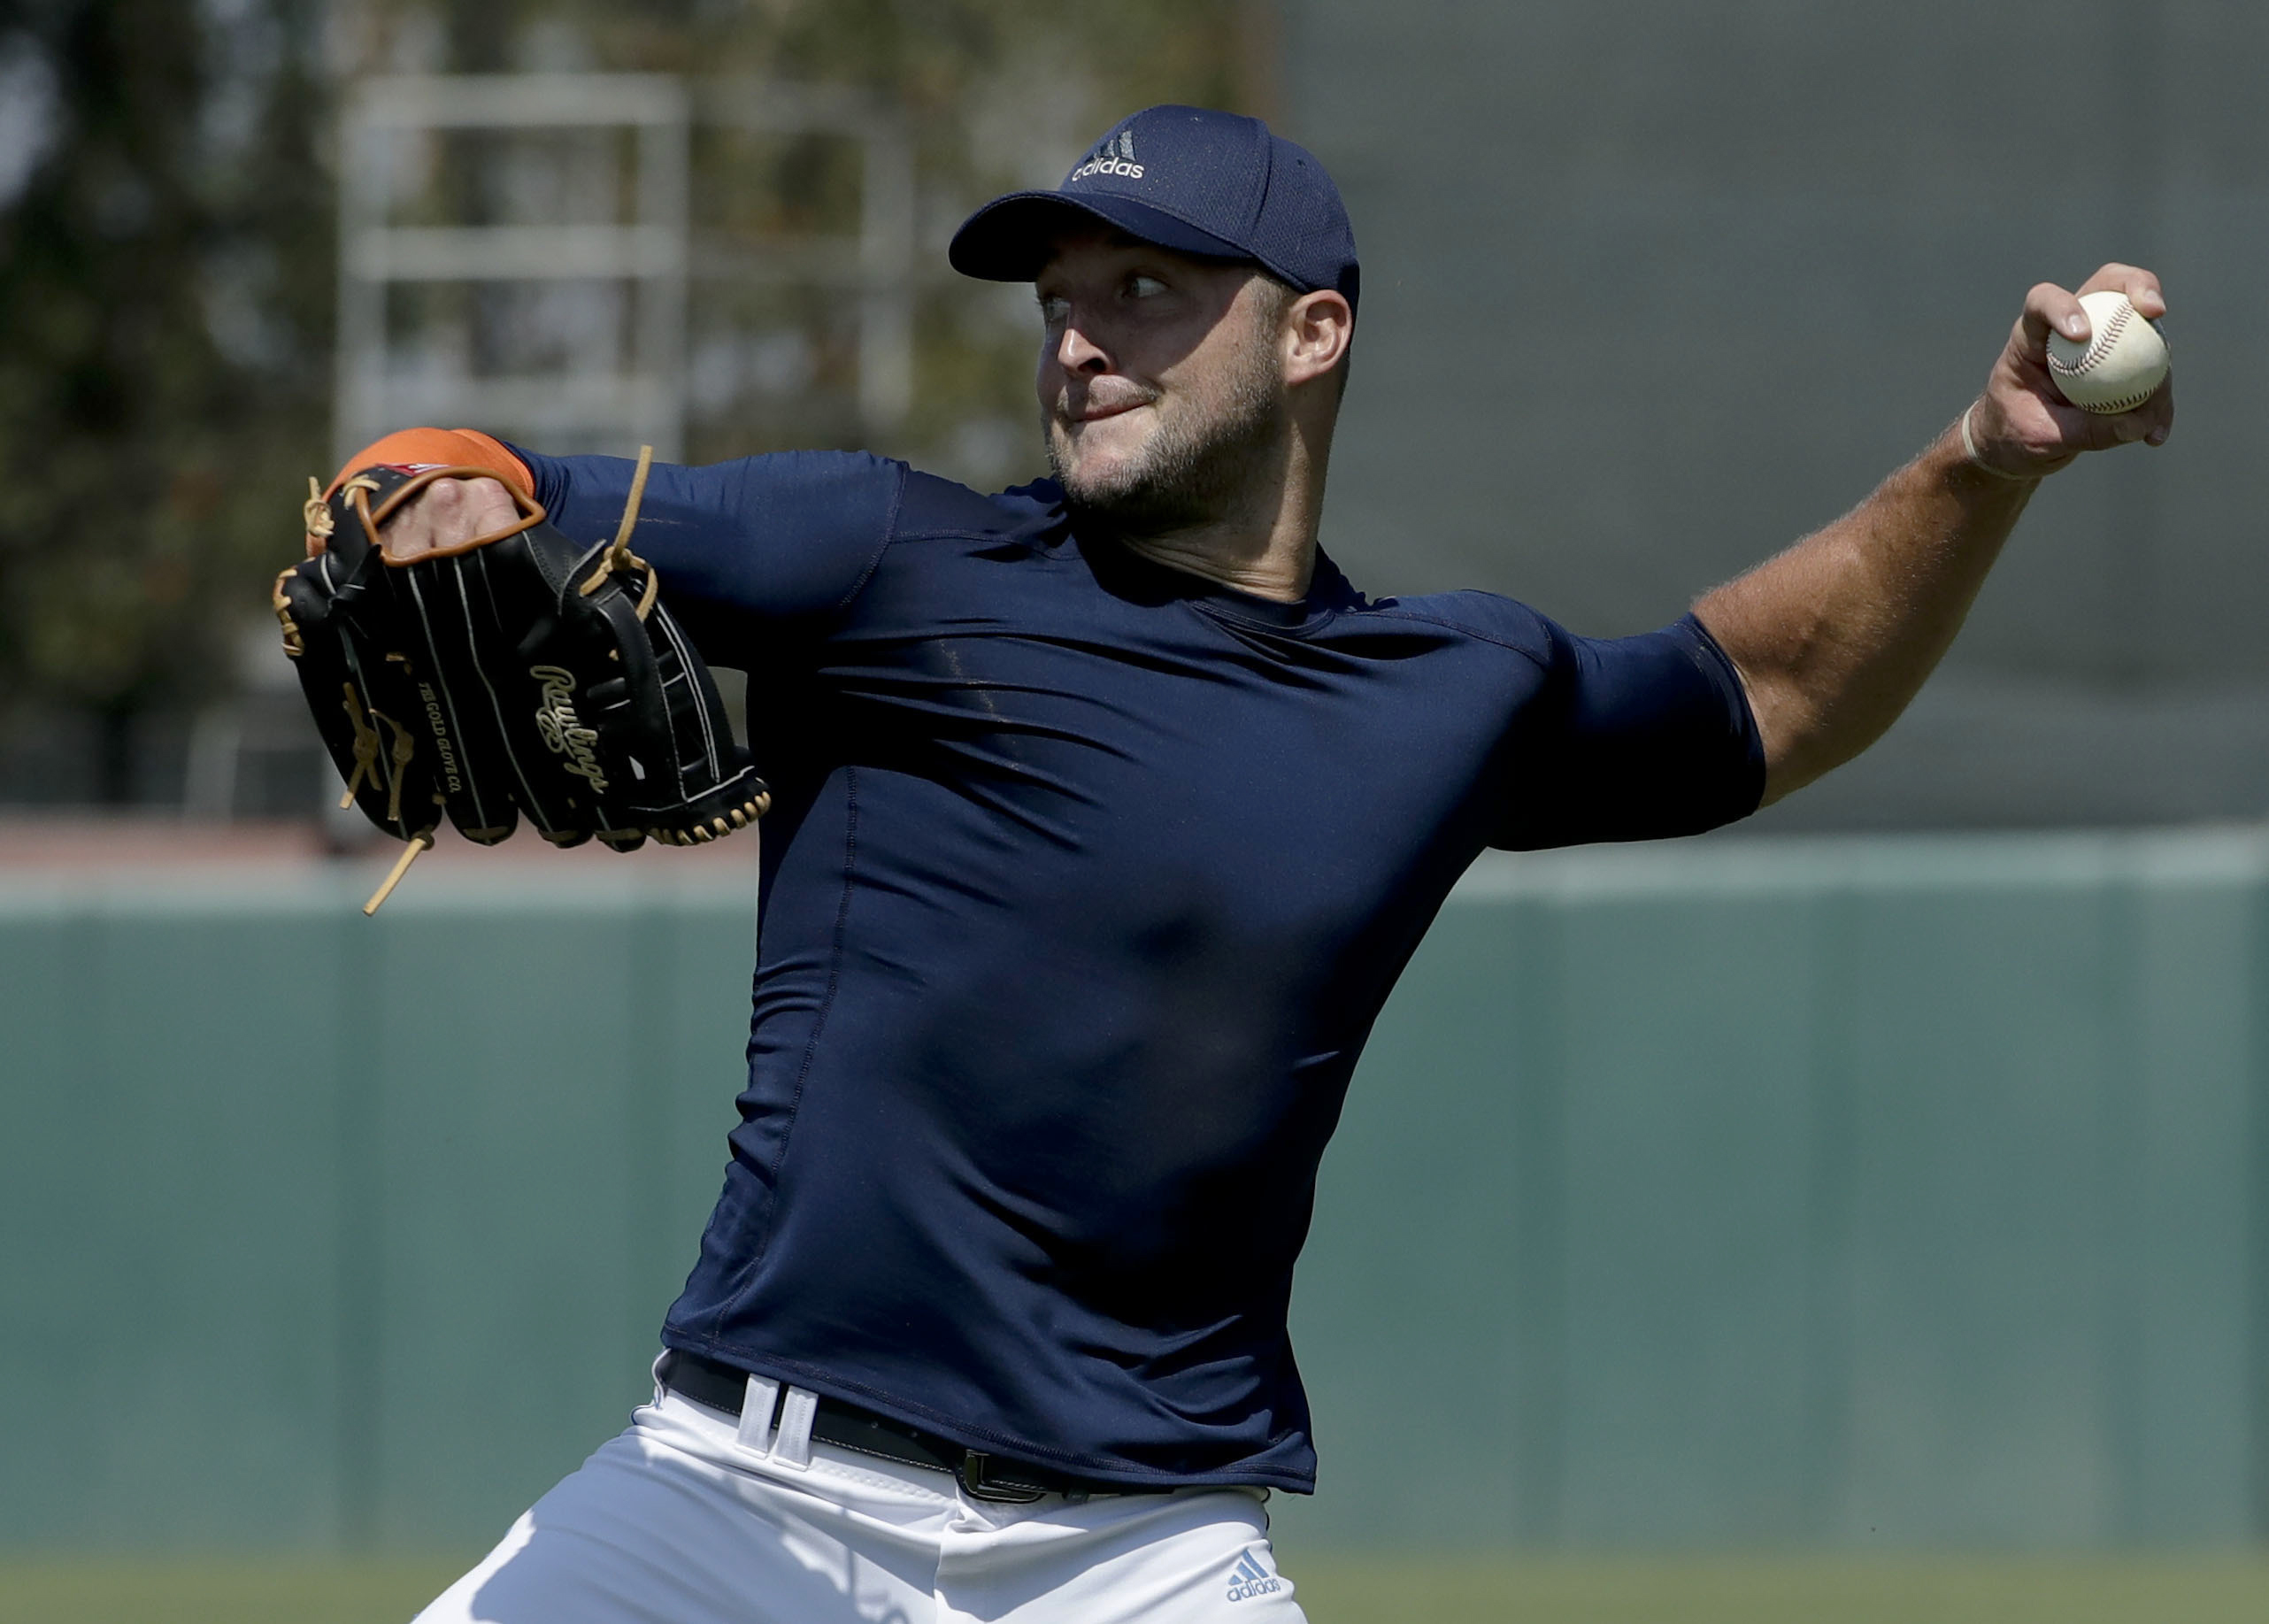 Former NFL quarterback, Tim Tebow throws a ball for baseball scouts and the media during a showcase on the campus of the University of Southern California, Tuesday, Aug. 30, 2016 in Los Angeles. The Heisman Trophy winner works out for a big gathering of s